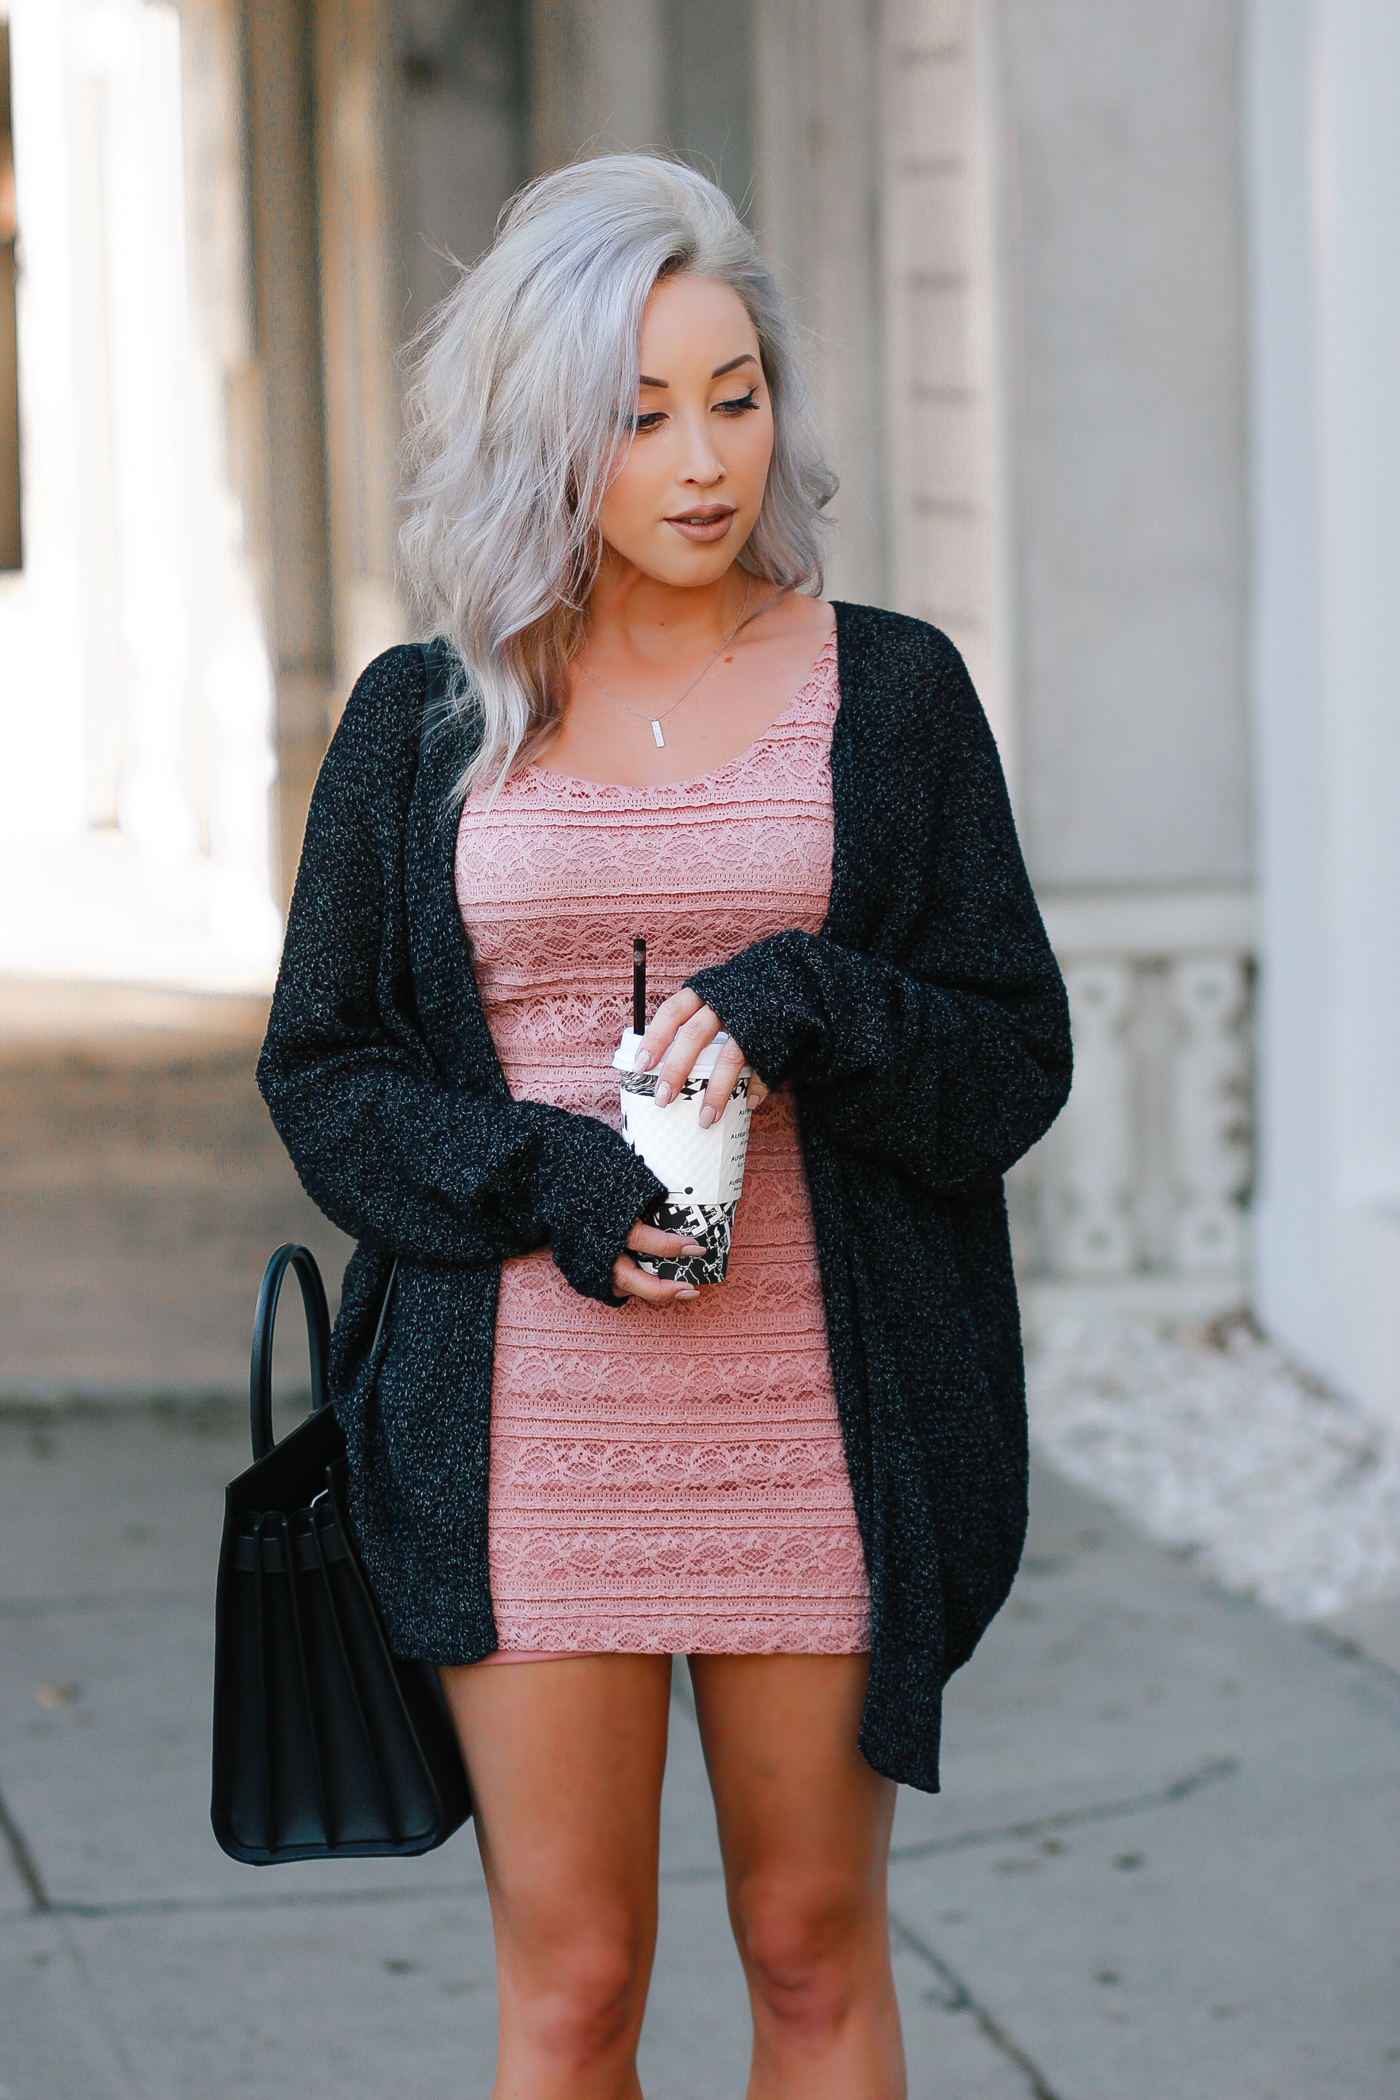 Blondie in the City | Dusty Rose Crochet Dress | Urban Outfitters Cardigan